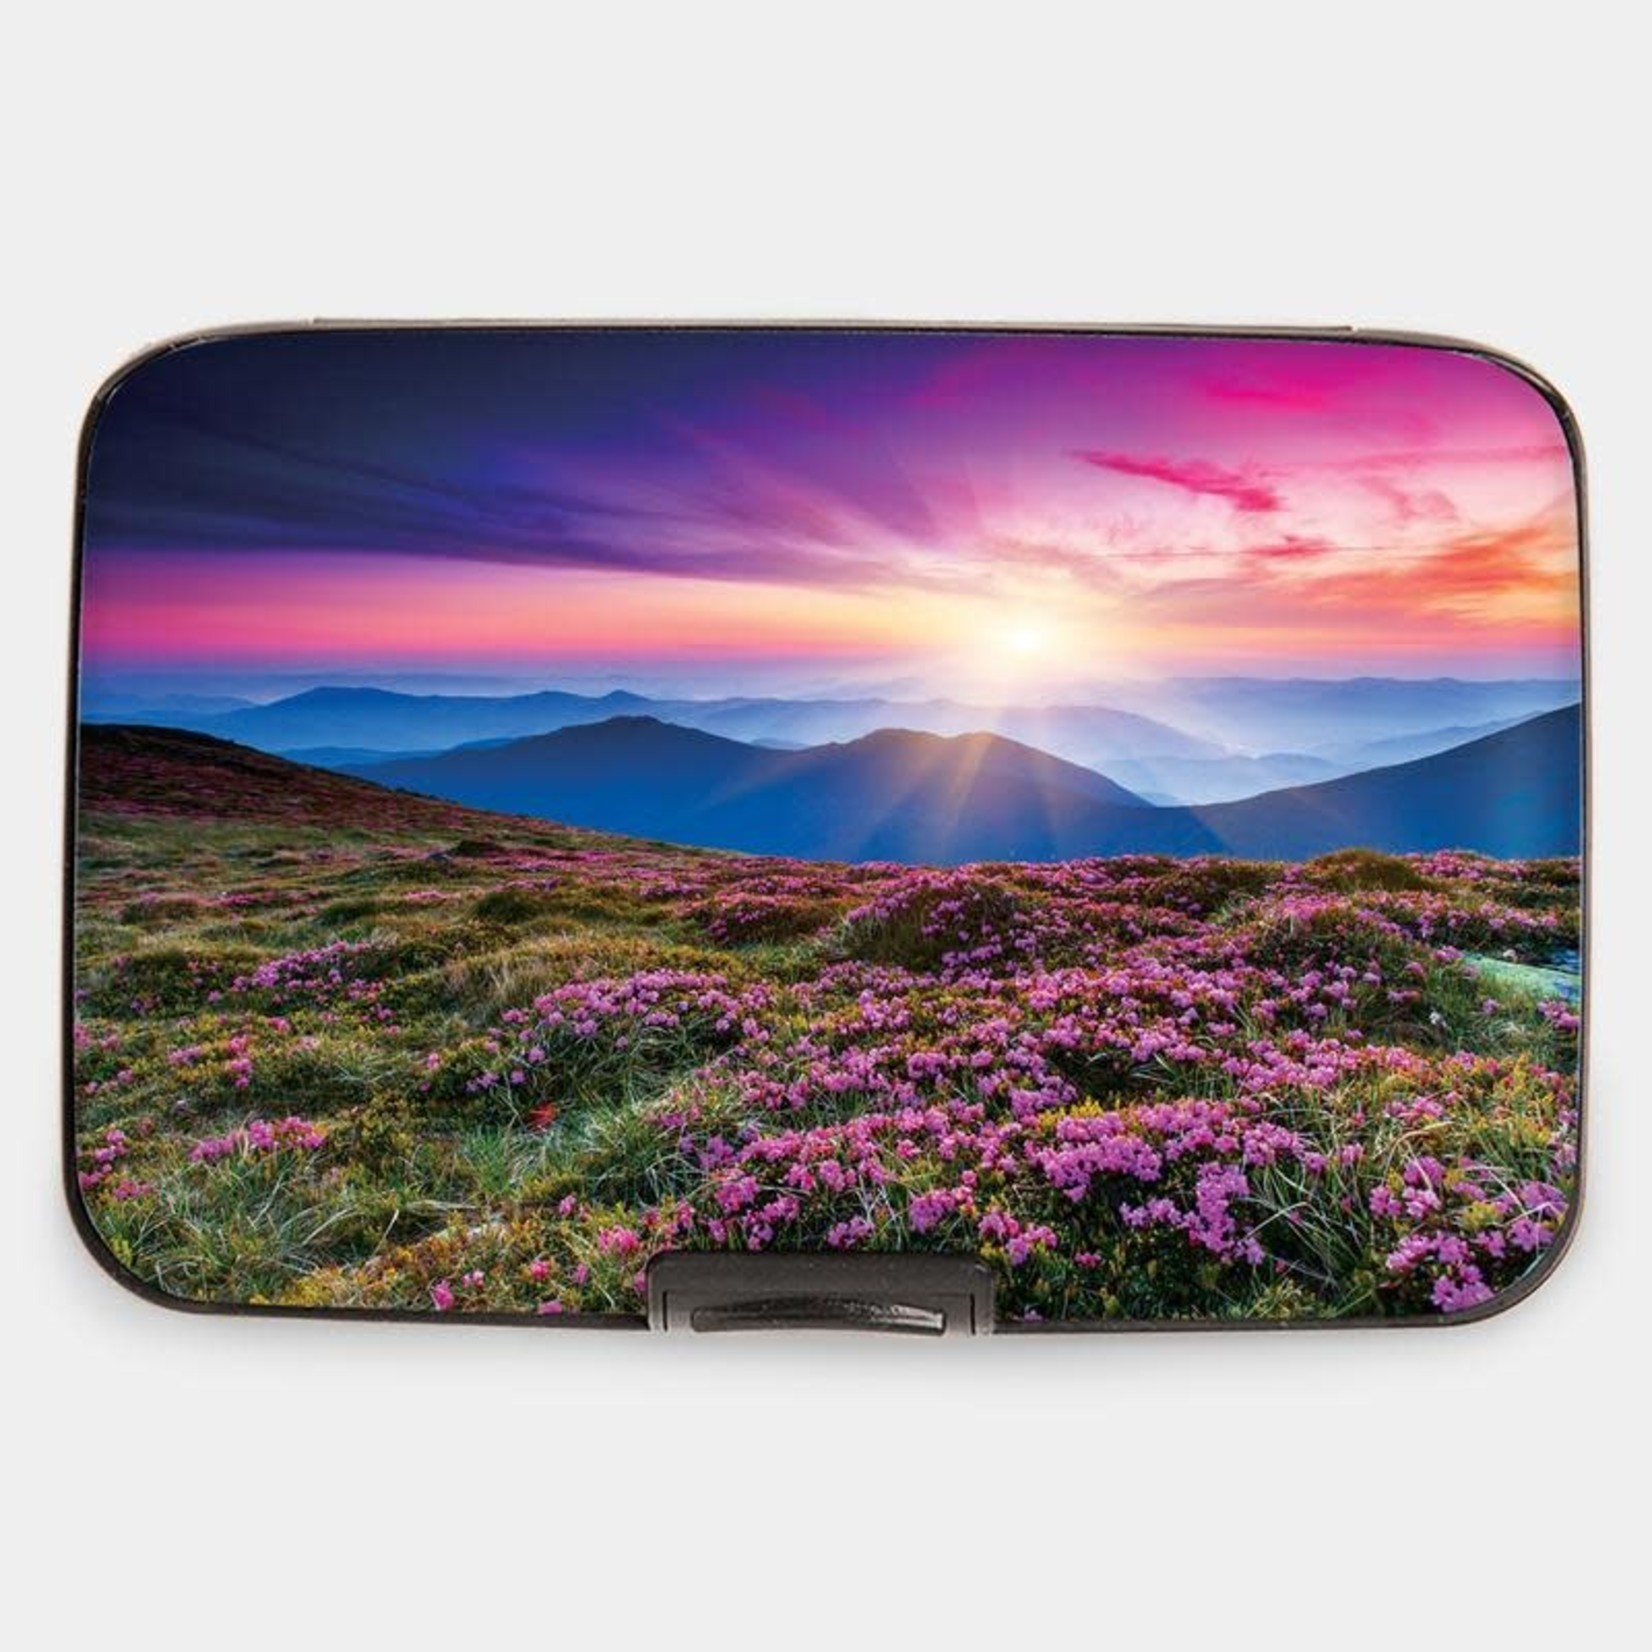 Monarque Armored Wallet - Sunset With Flowers